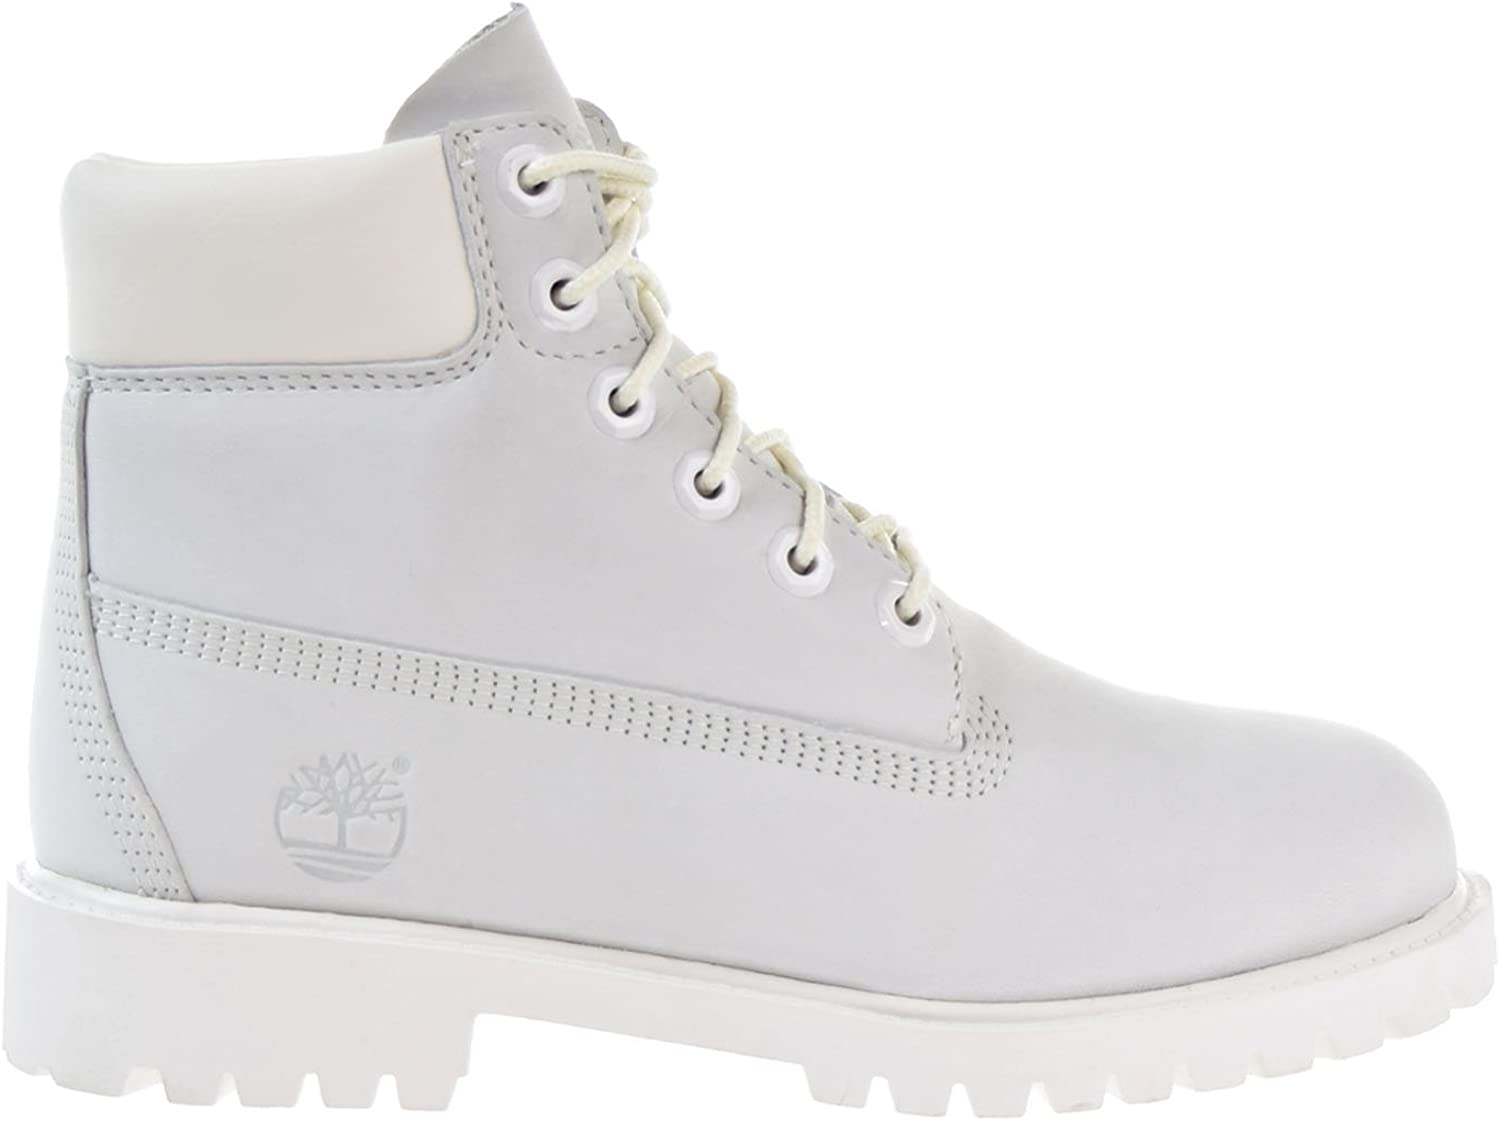 Timberland 6 Inch Waterproof Big Kid's Boots White a1mli